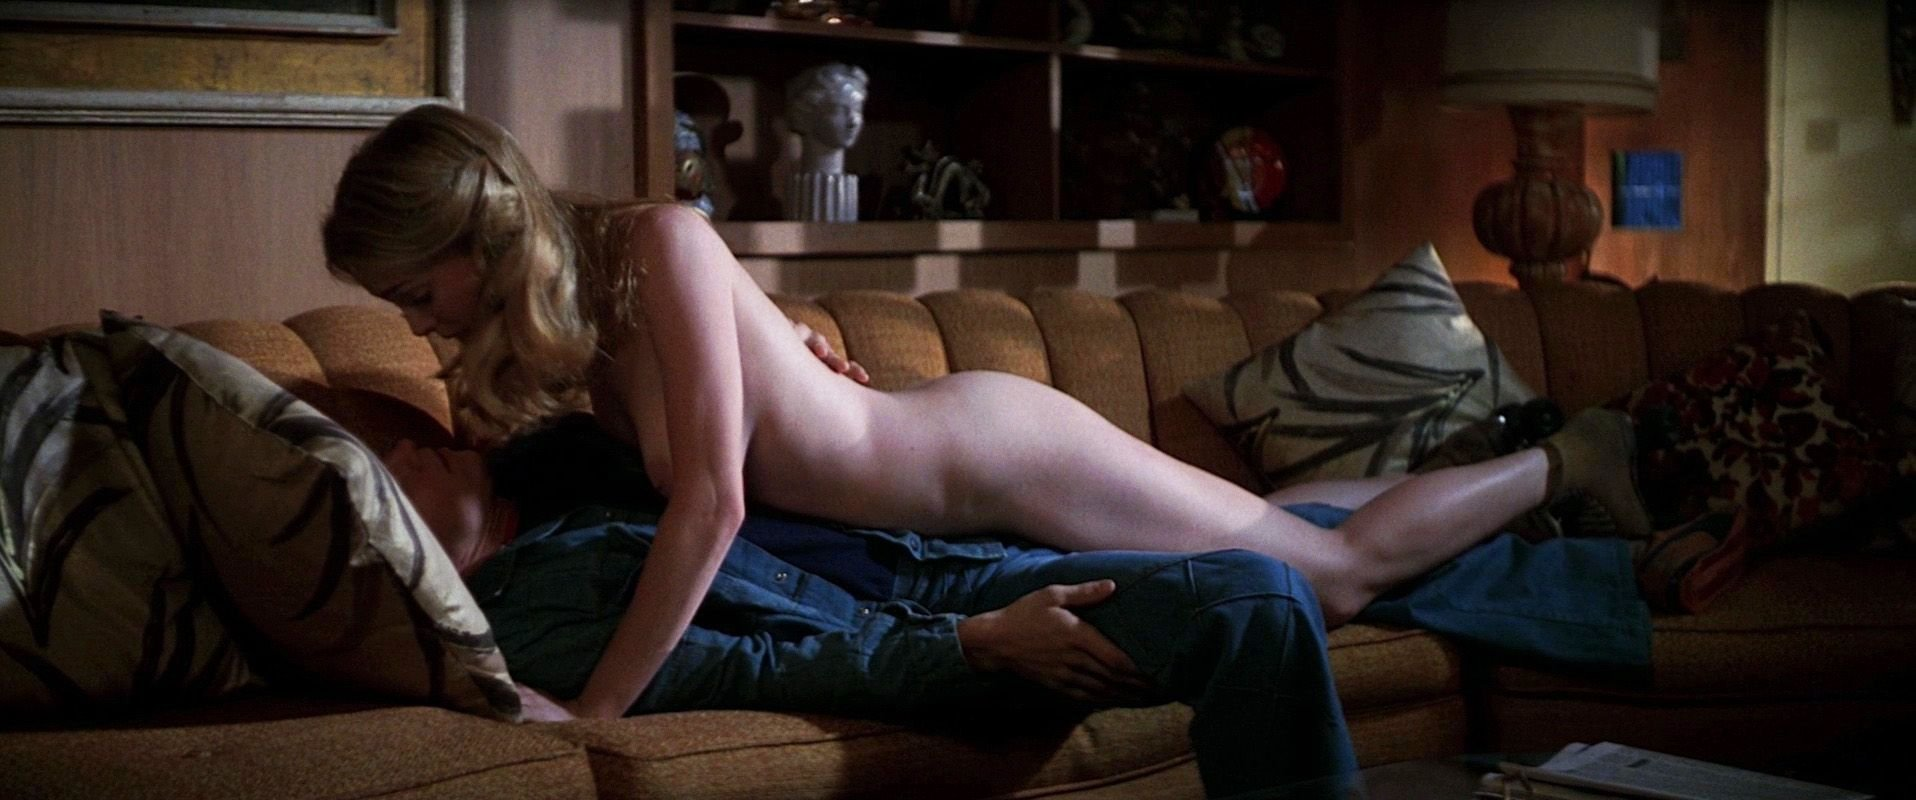 Heather Graham Nude Vids 6